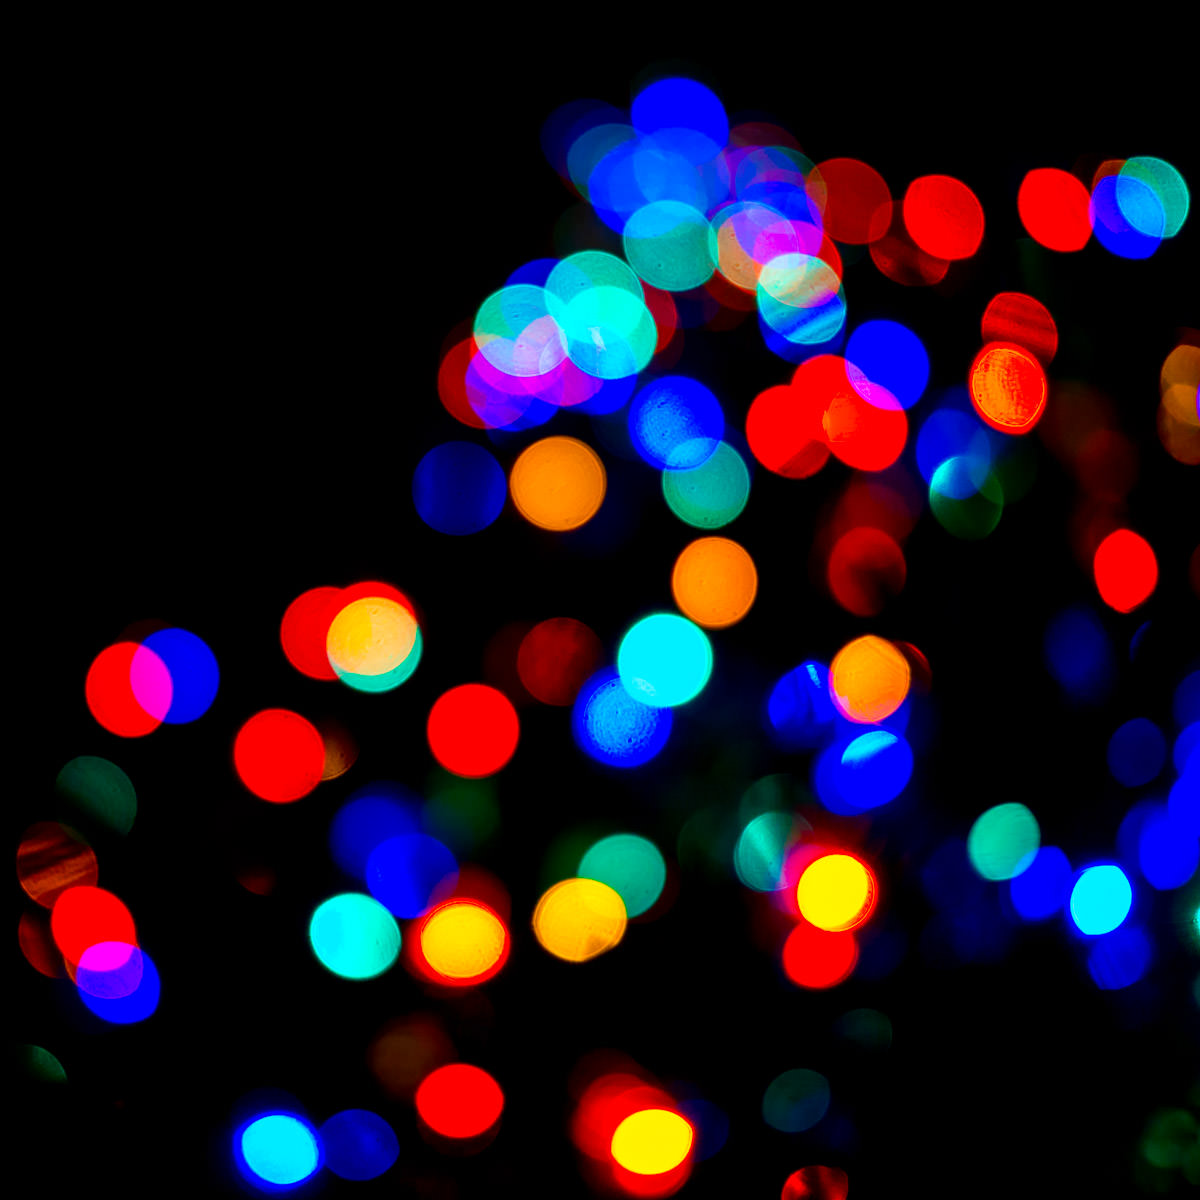 An abstraction of Christmas lights on a tree in Dallas' Klyde Warren Park.